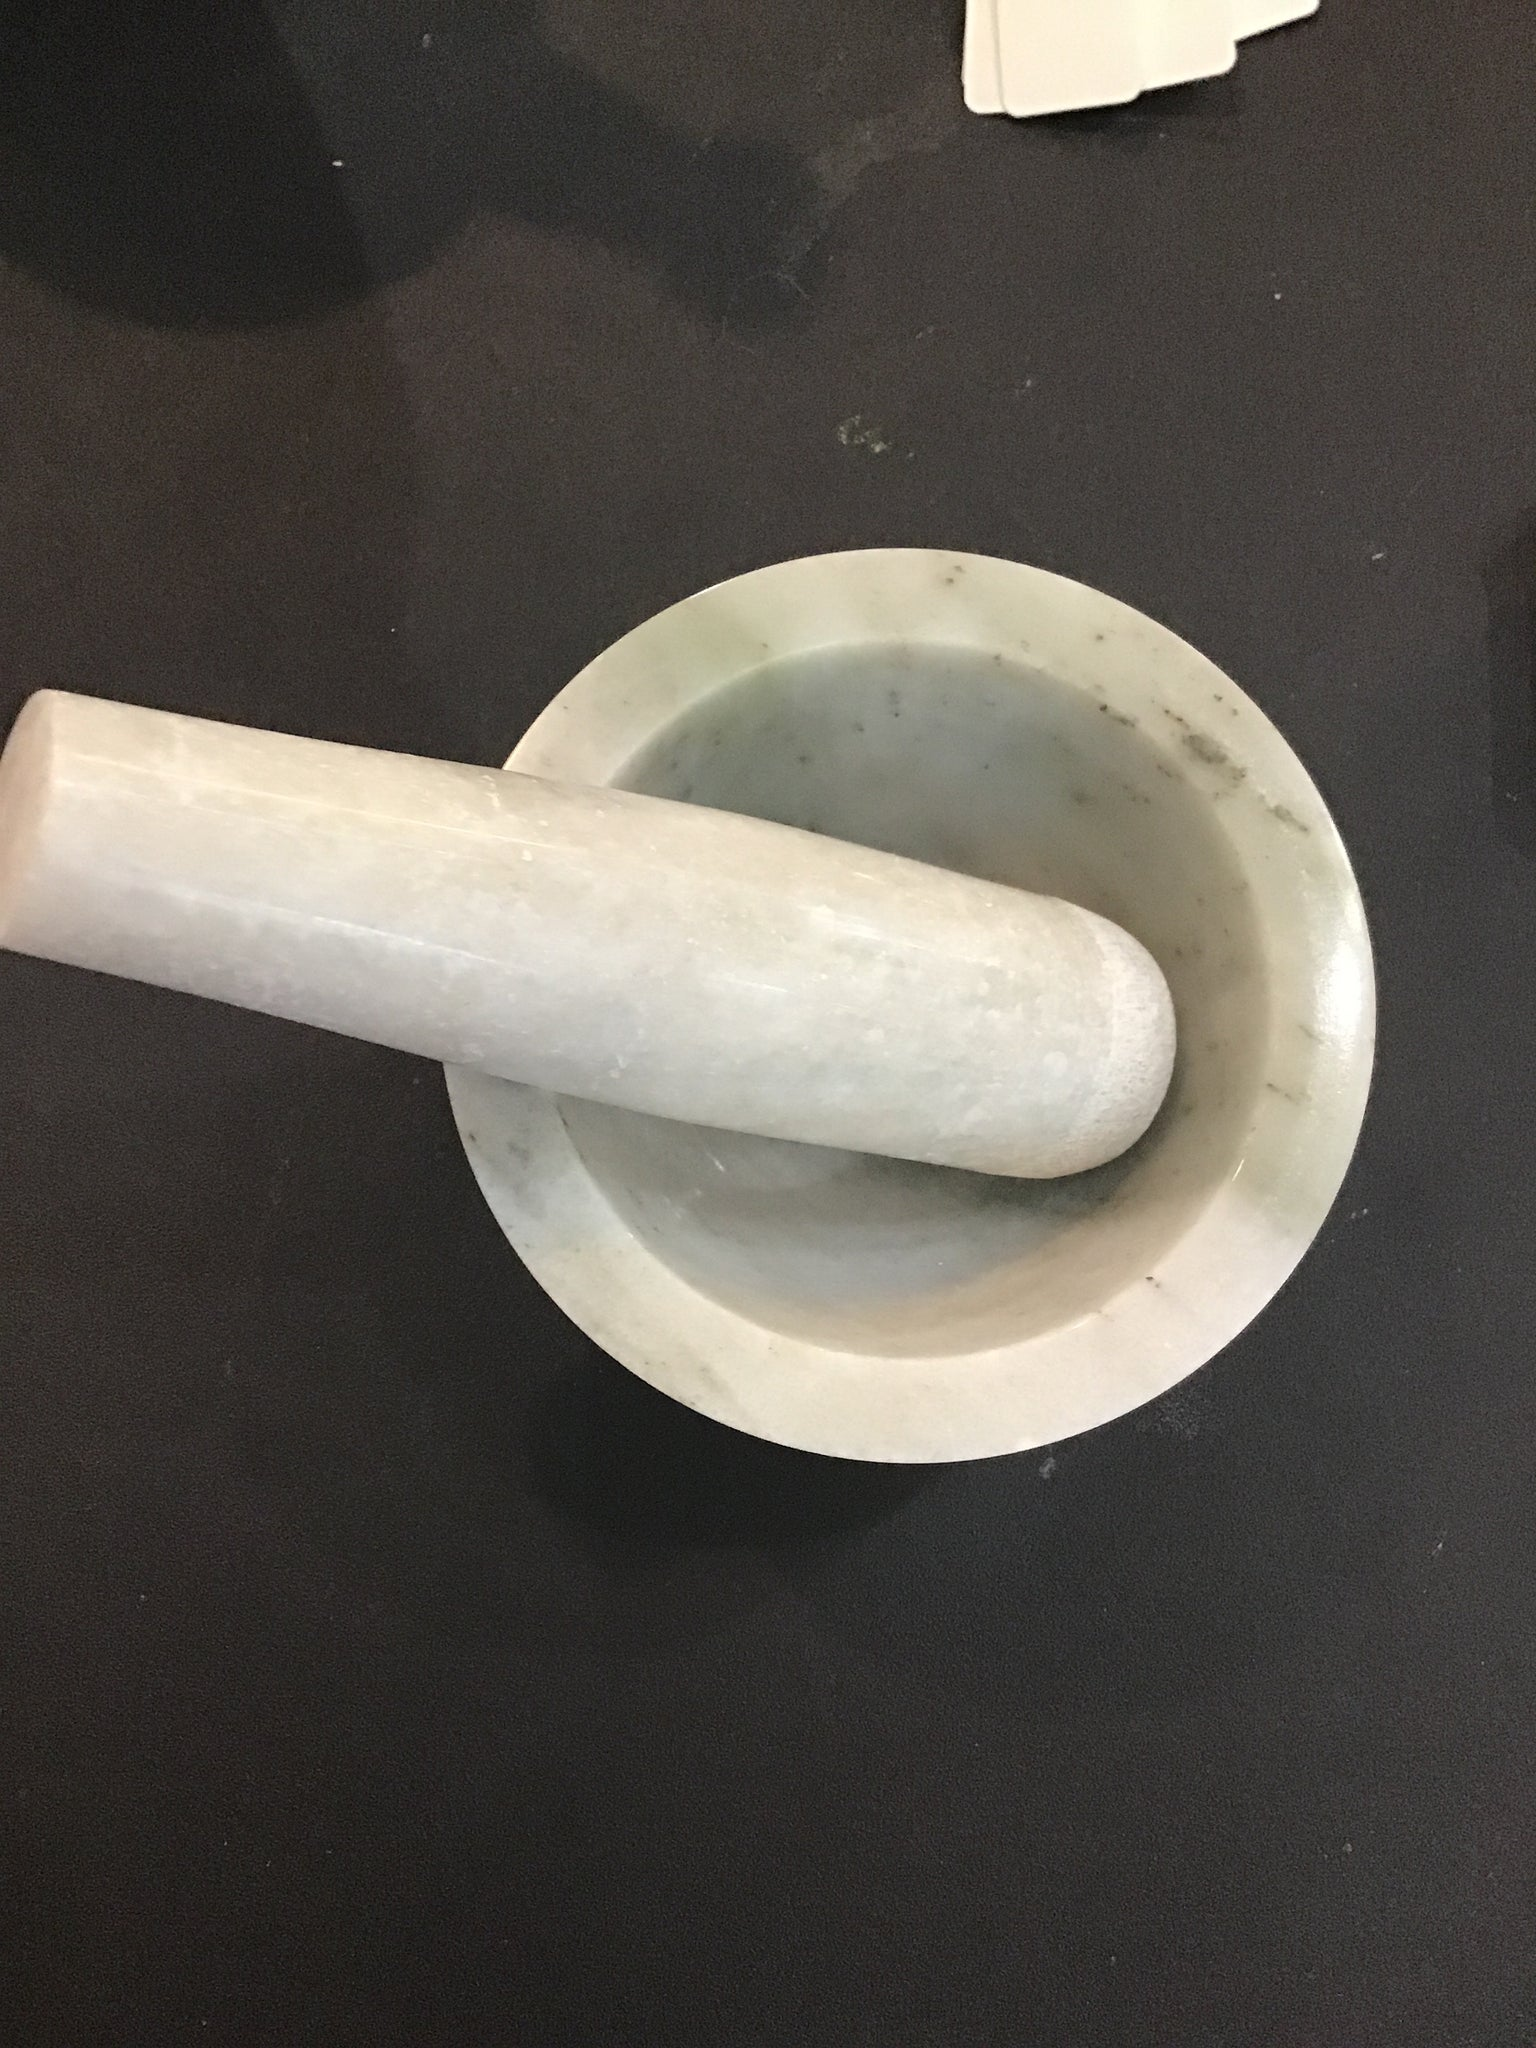 Marble mortar and pestle